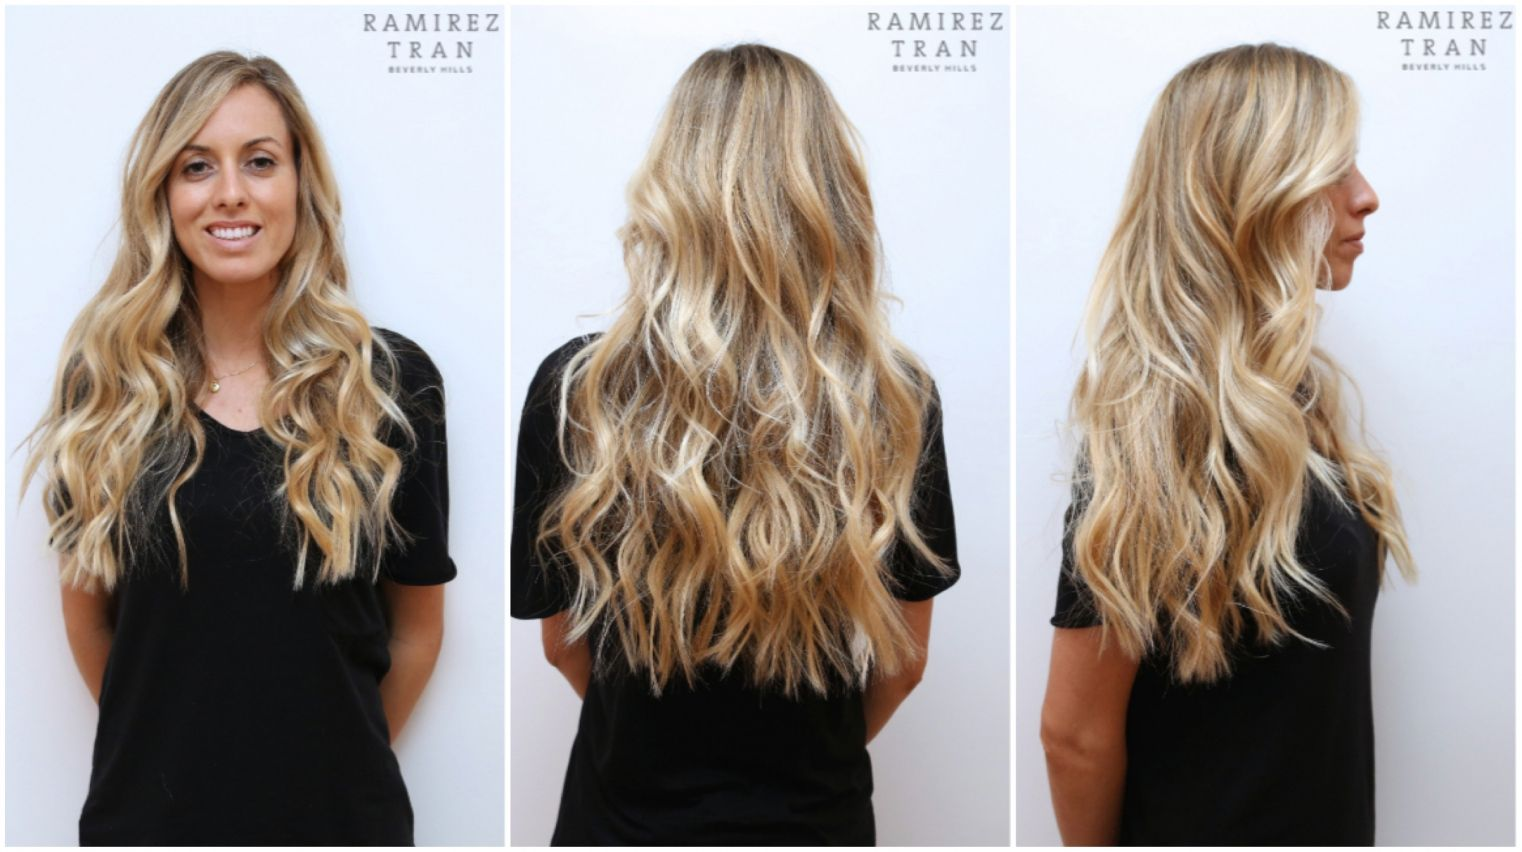 Natural Looking Blonde Hair Color Best For Dark Skin Women Check More At